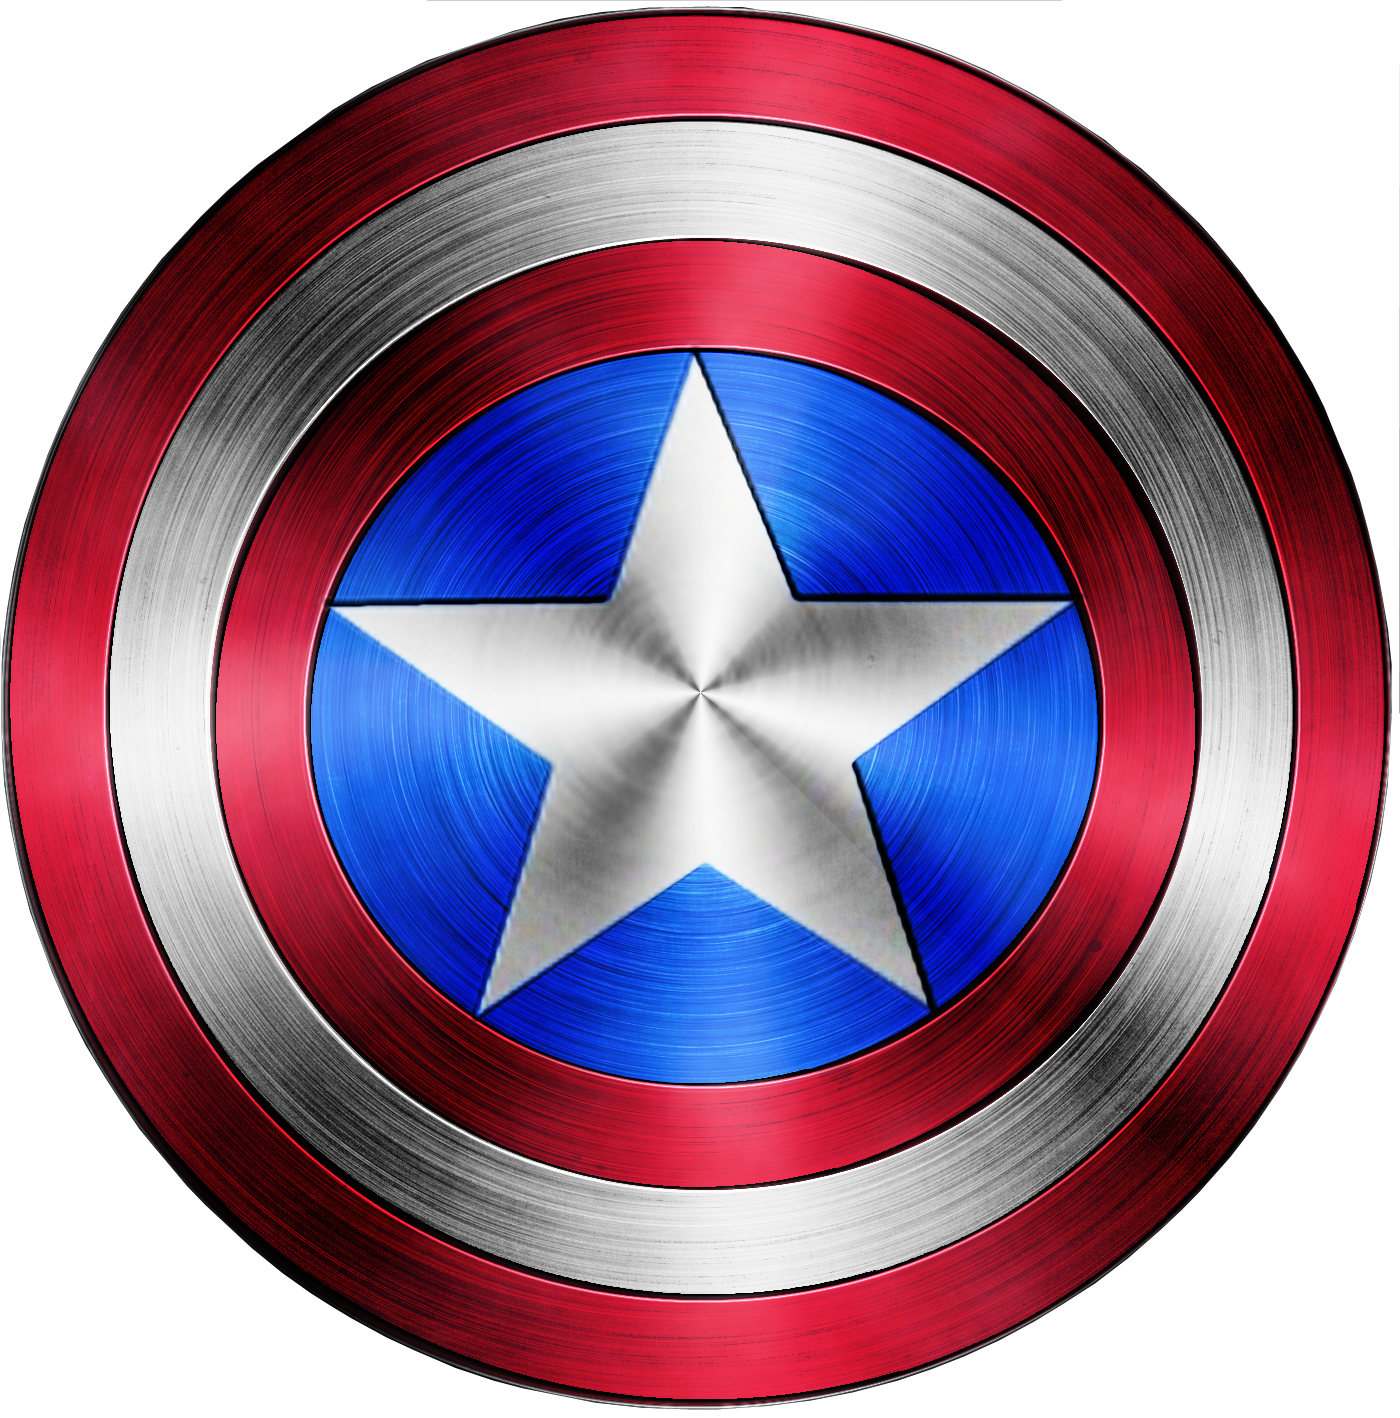 Captain America Shield By Jdrincs On Deviantart #OiHQSG - Clipart Kid